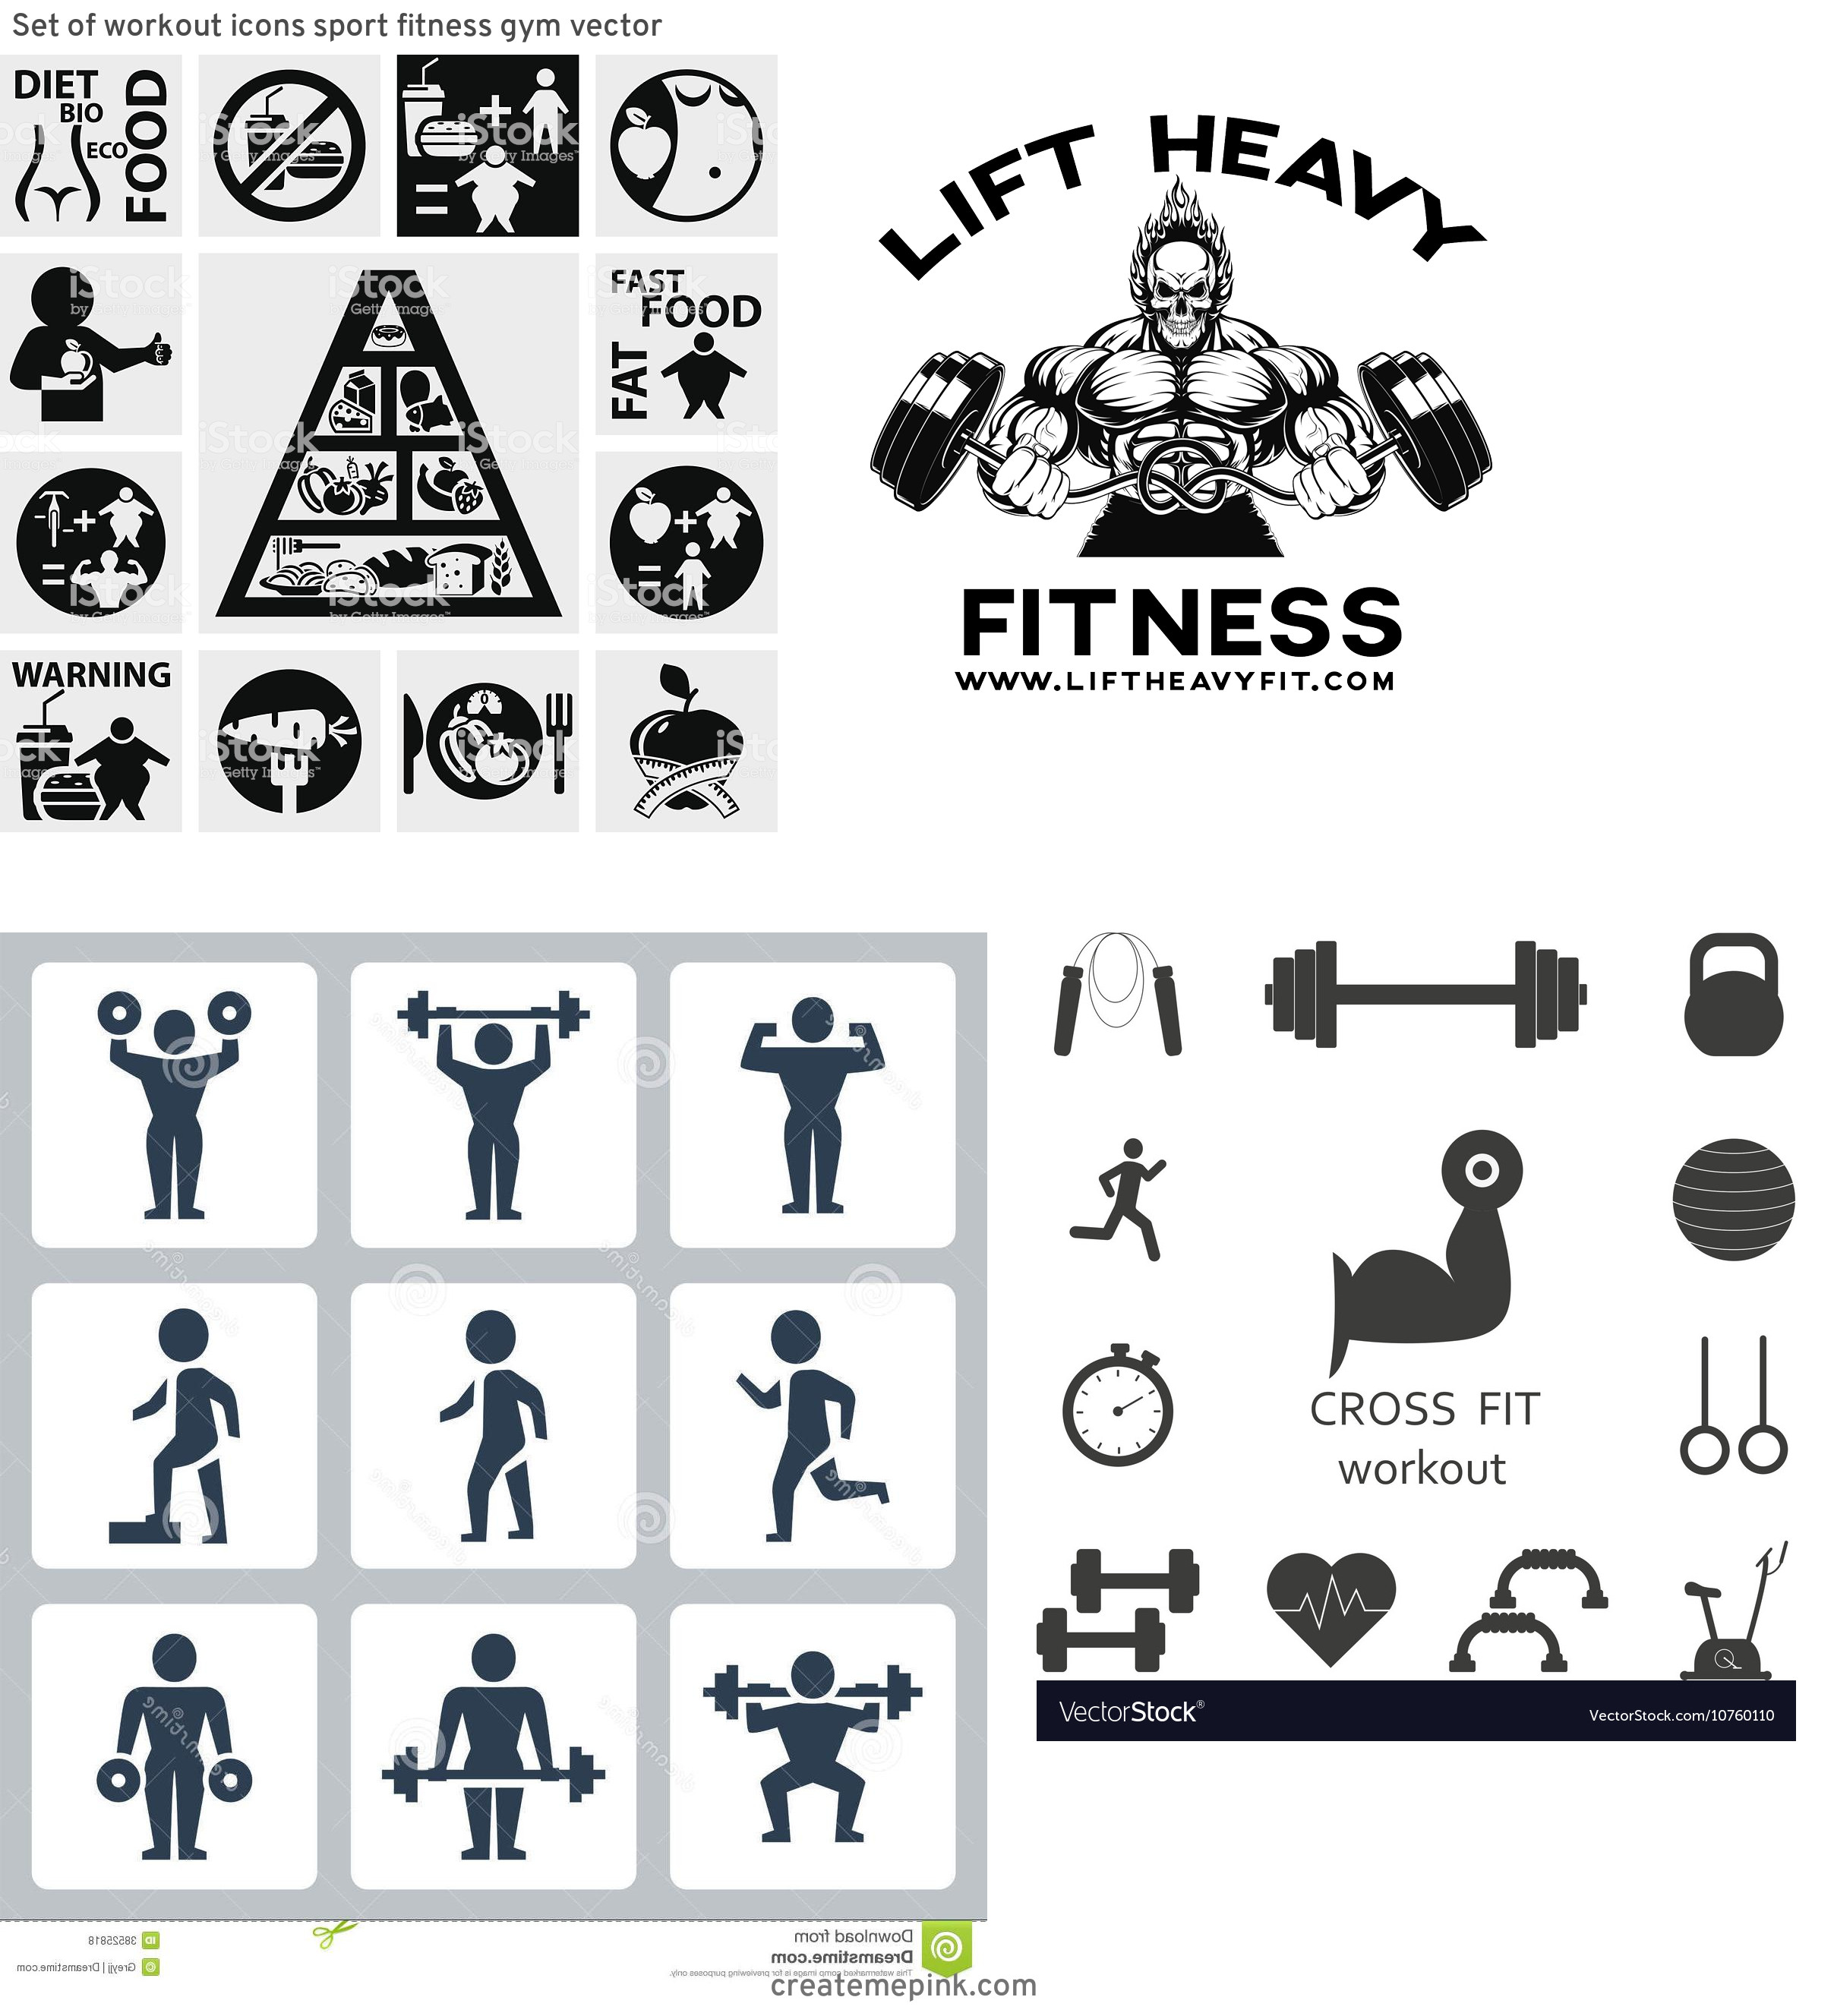 Fitness Vector Art: Set Of Workout Icons Sport Fitness Gym Vector